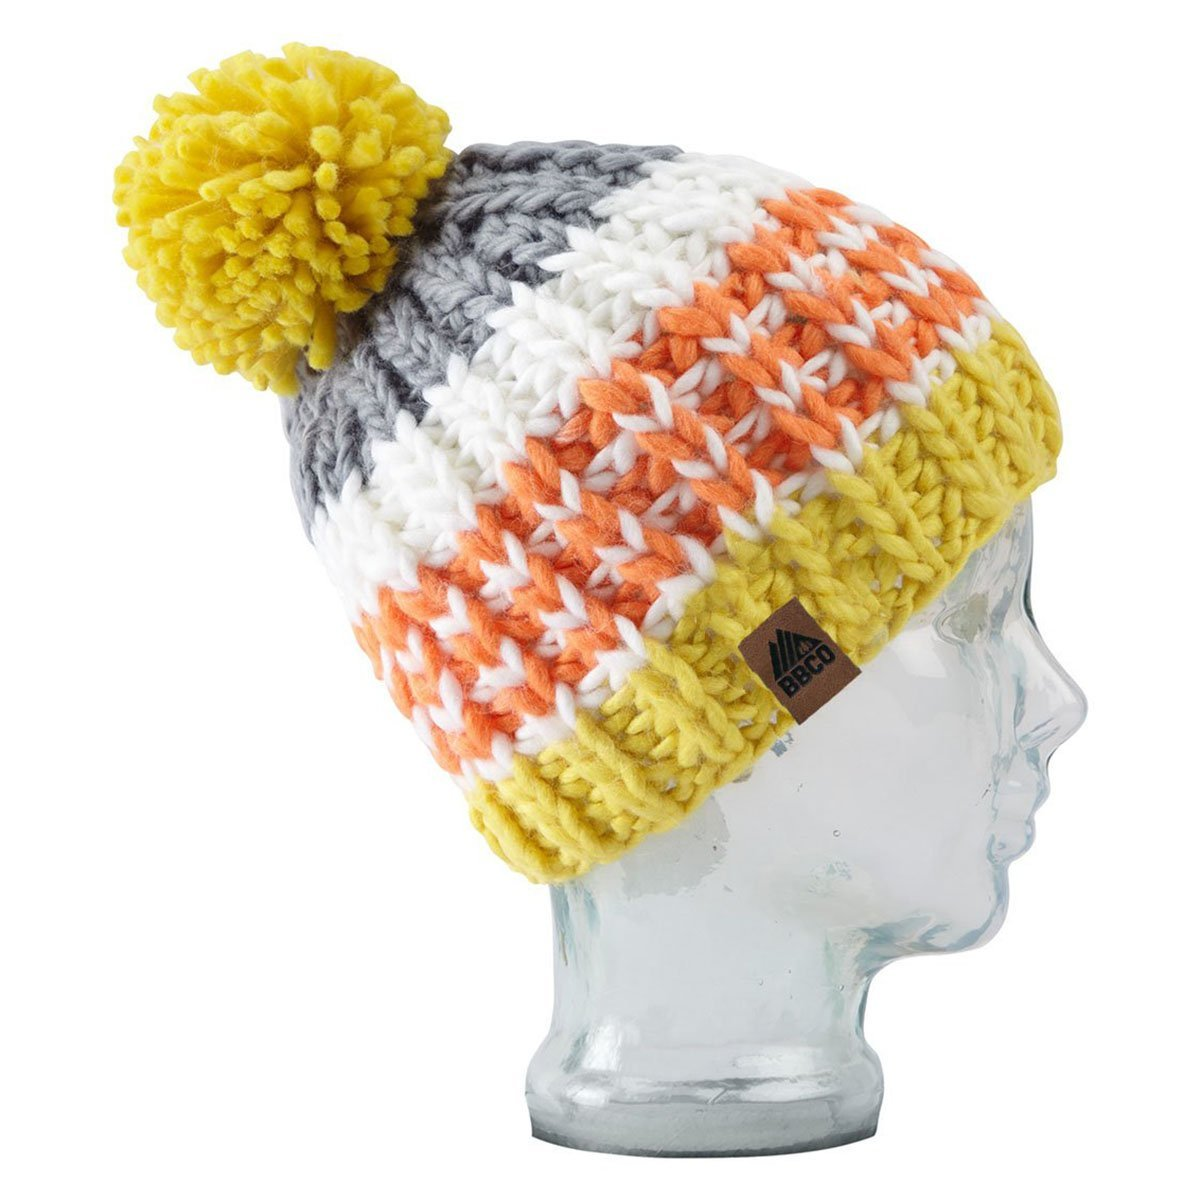 BBCOSU011, BBCo, Surfer Beanie, Multi-colour, Chunky Knit Wool | Ski Bobble Hat